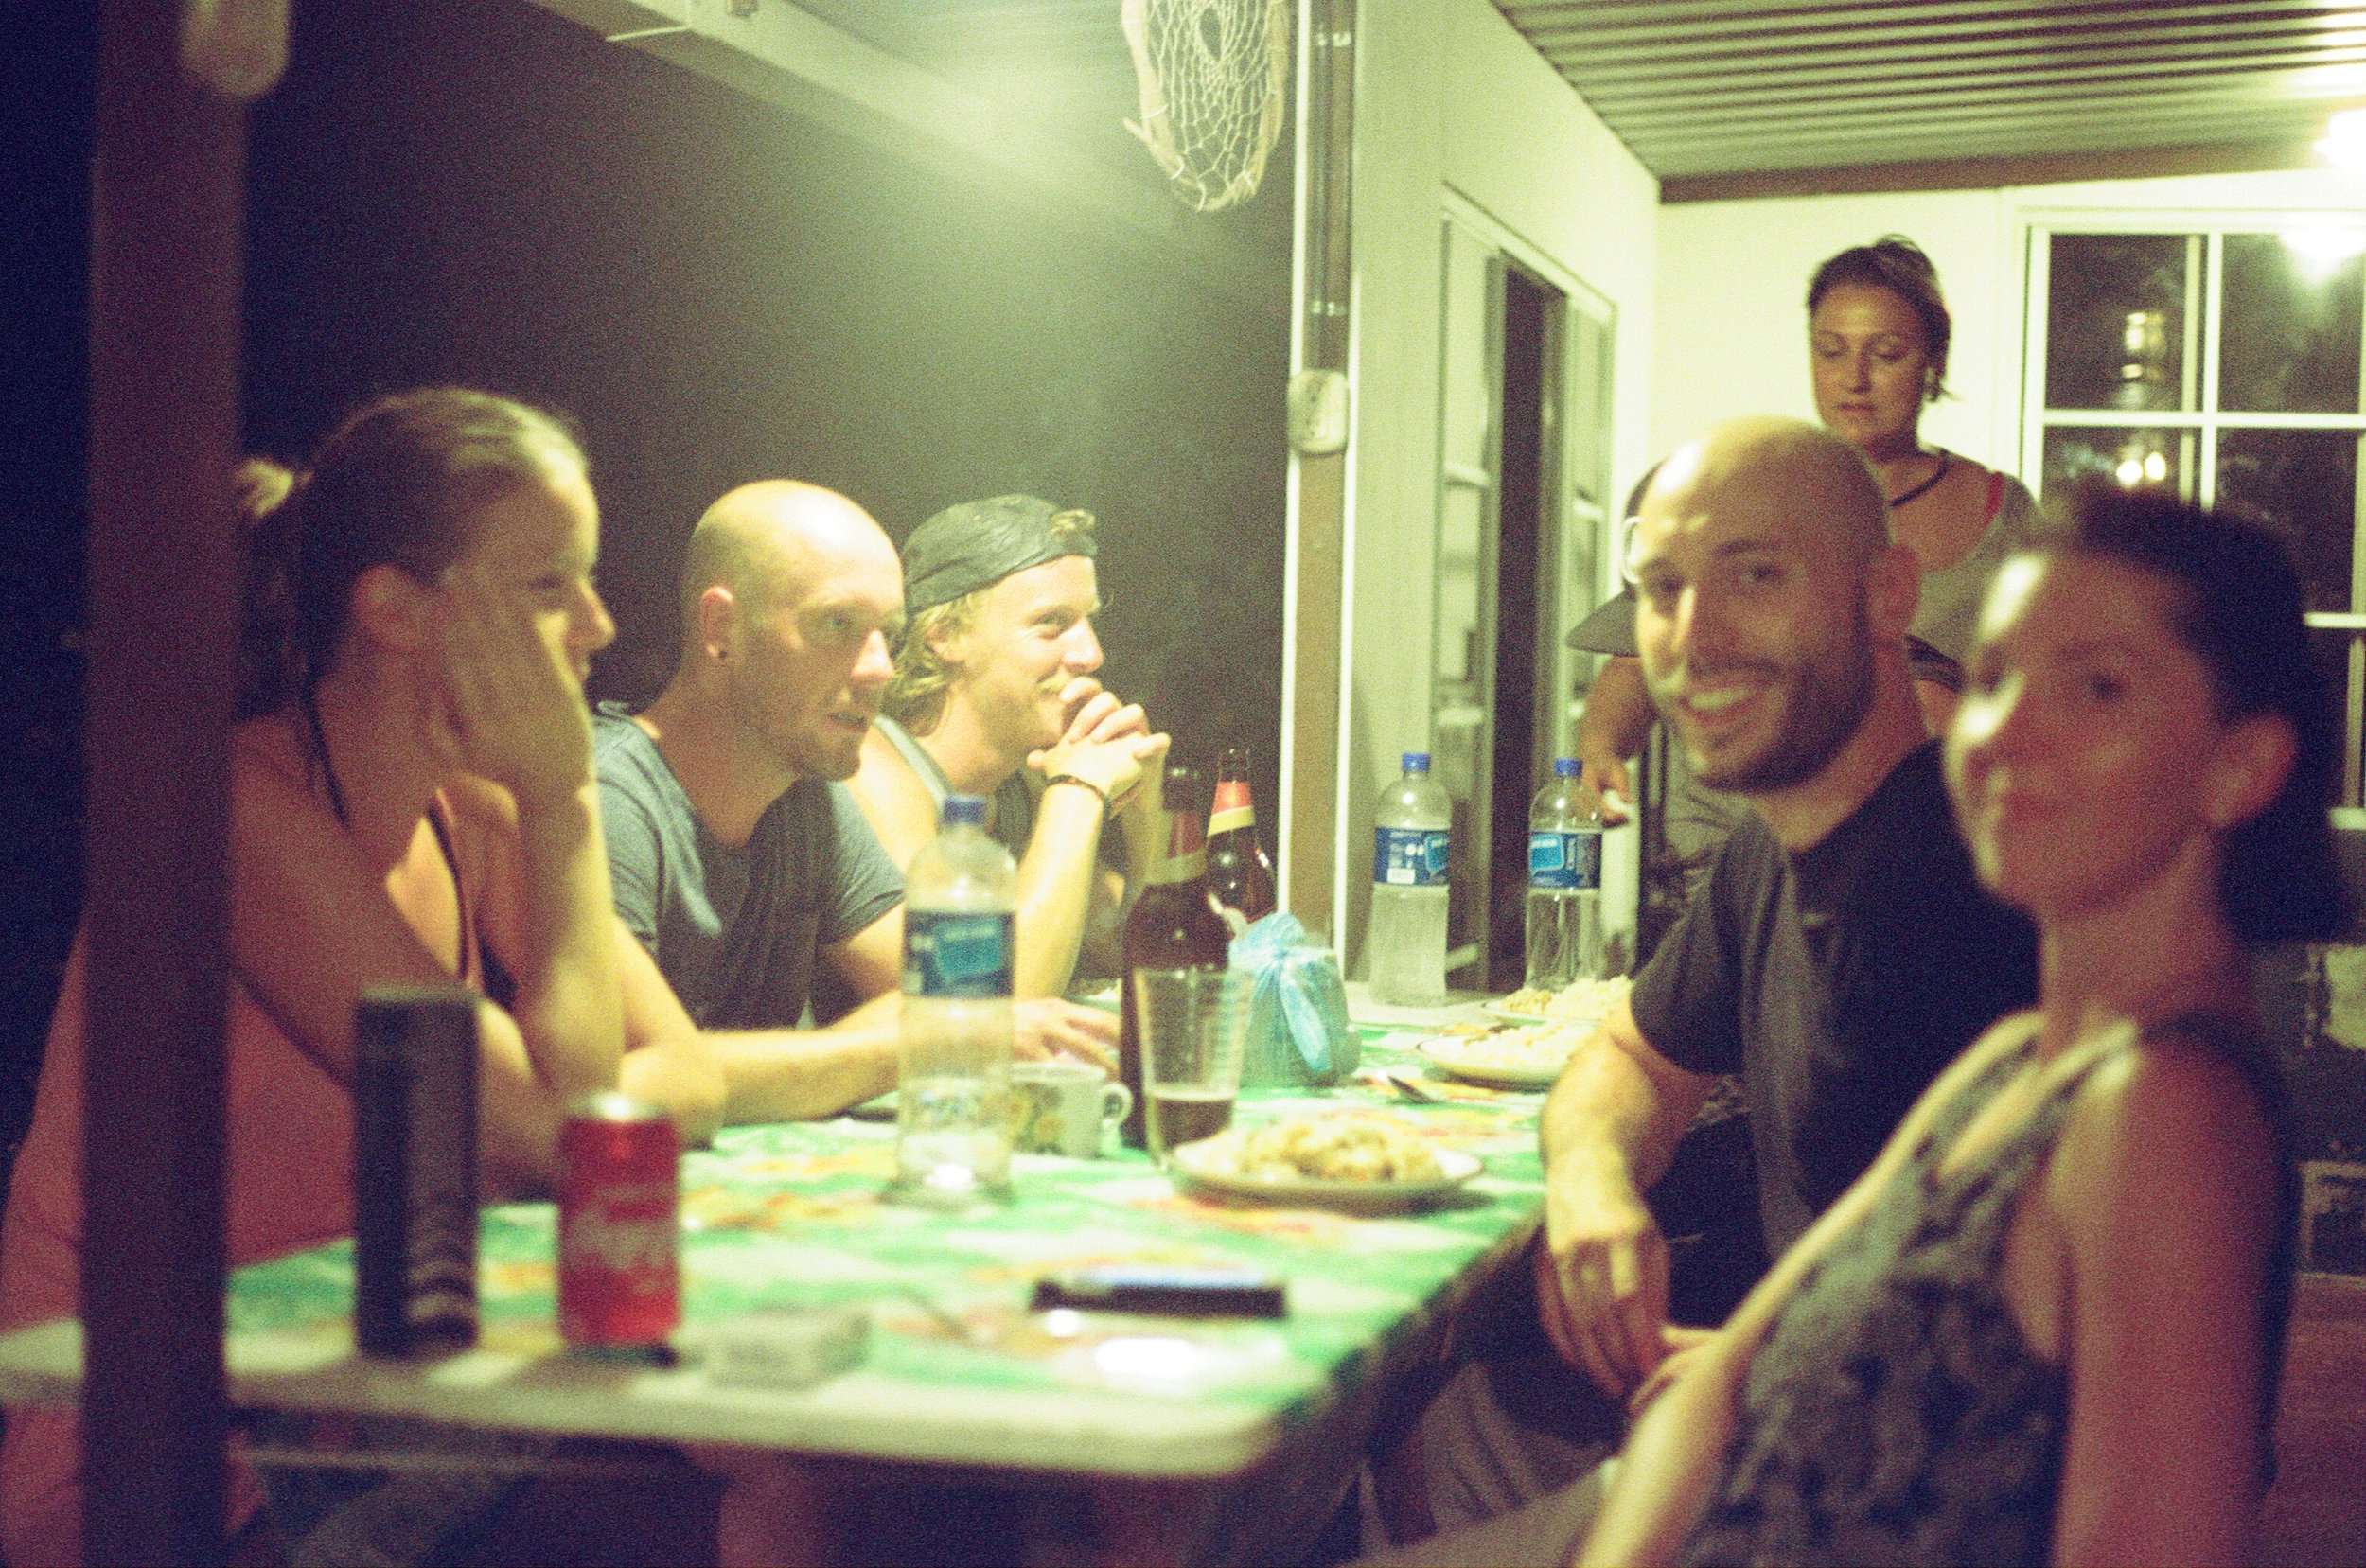 Table of Foreigners